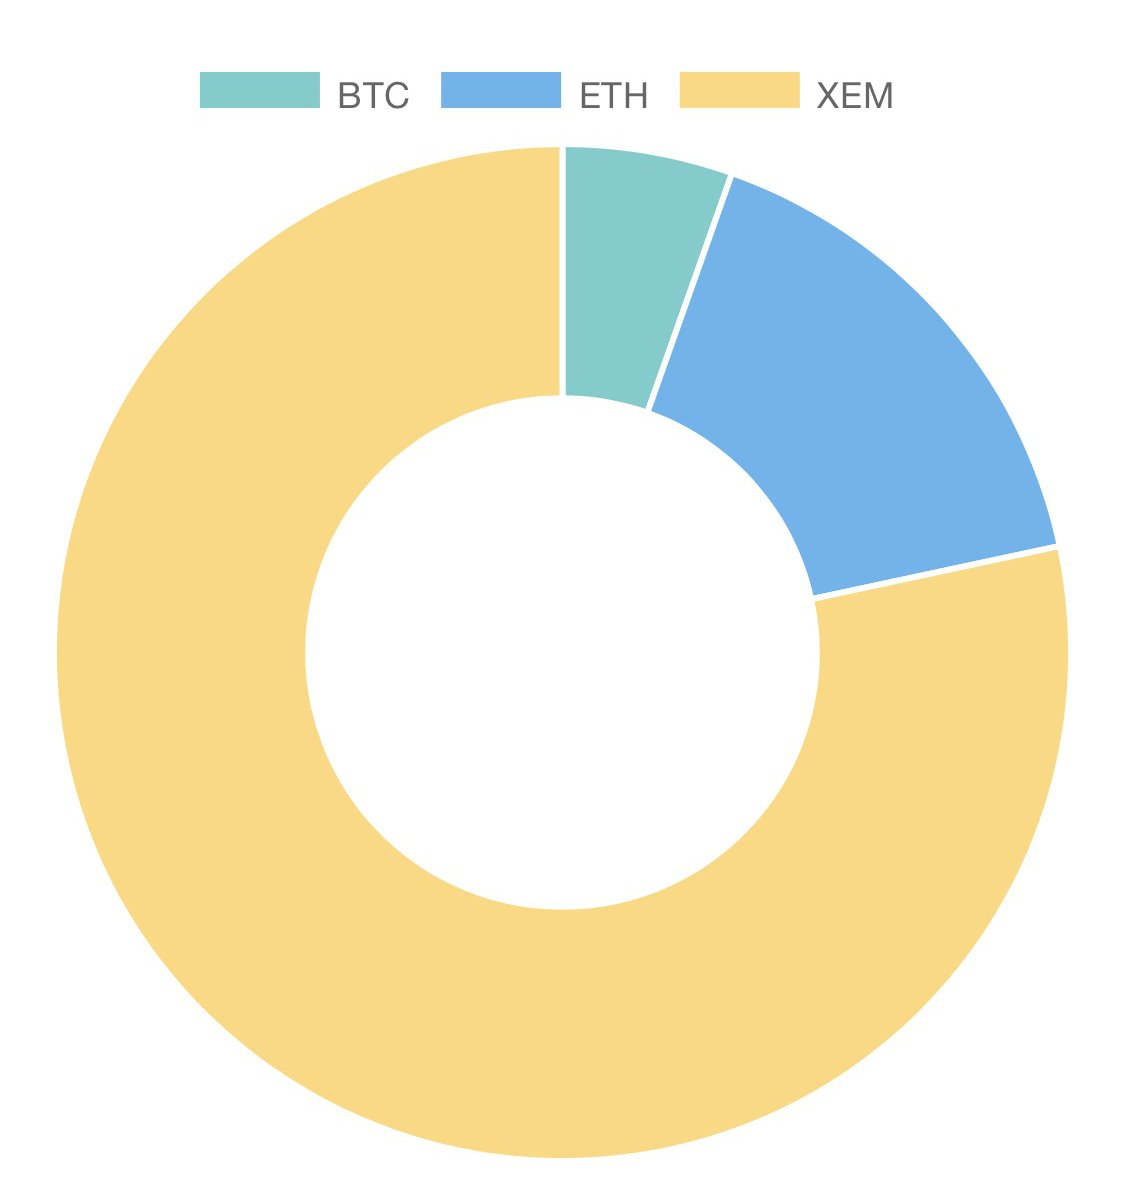 #NEM Community is the biggest contributor so far to ongoing #GRAFT #Token #PreSale! But GRAFT Wallet and POS apps support #BTC and #ETH too!<br>http://pic.twitter.com/l4Mfcha6TR